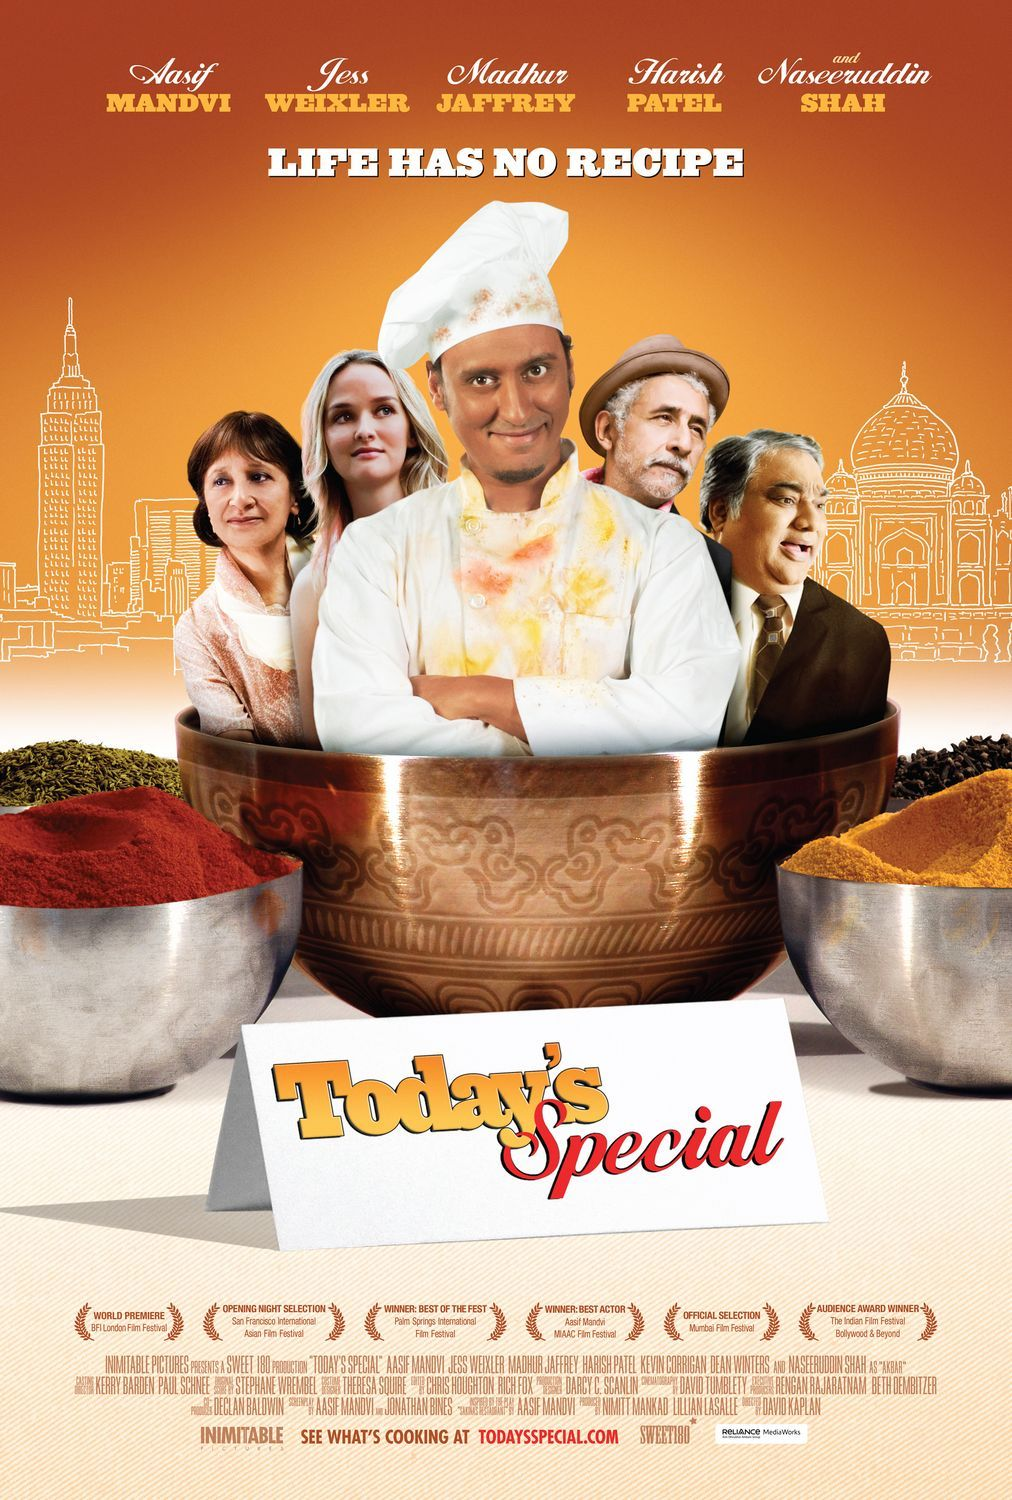 today's special (2009) | films | pinterest | indian movies, films